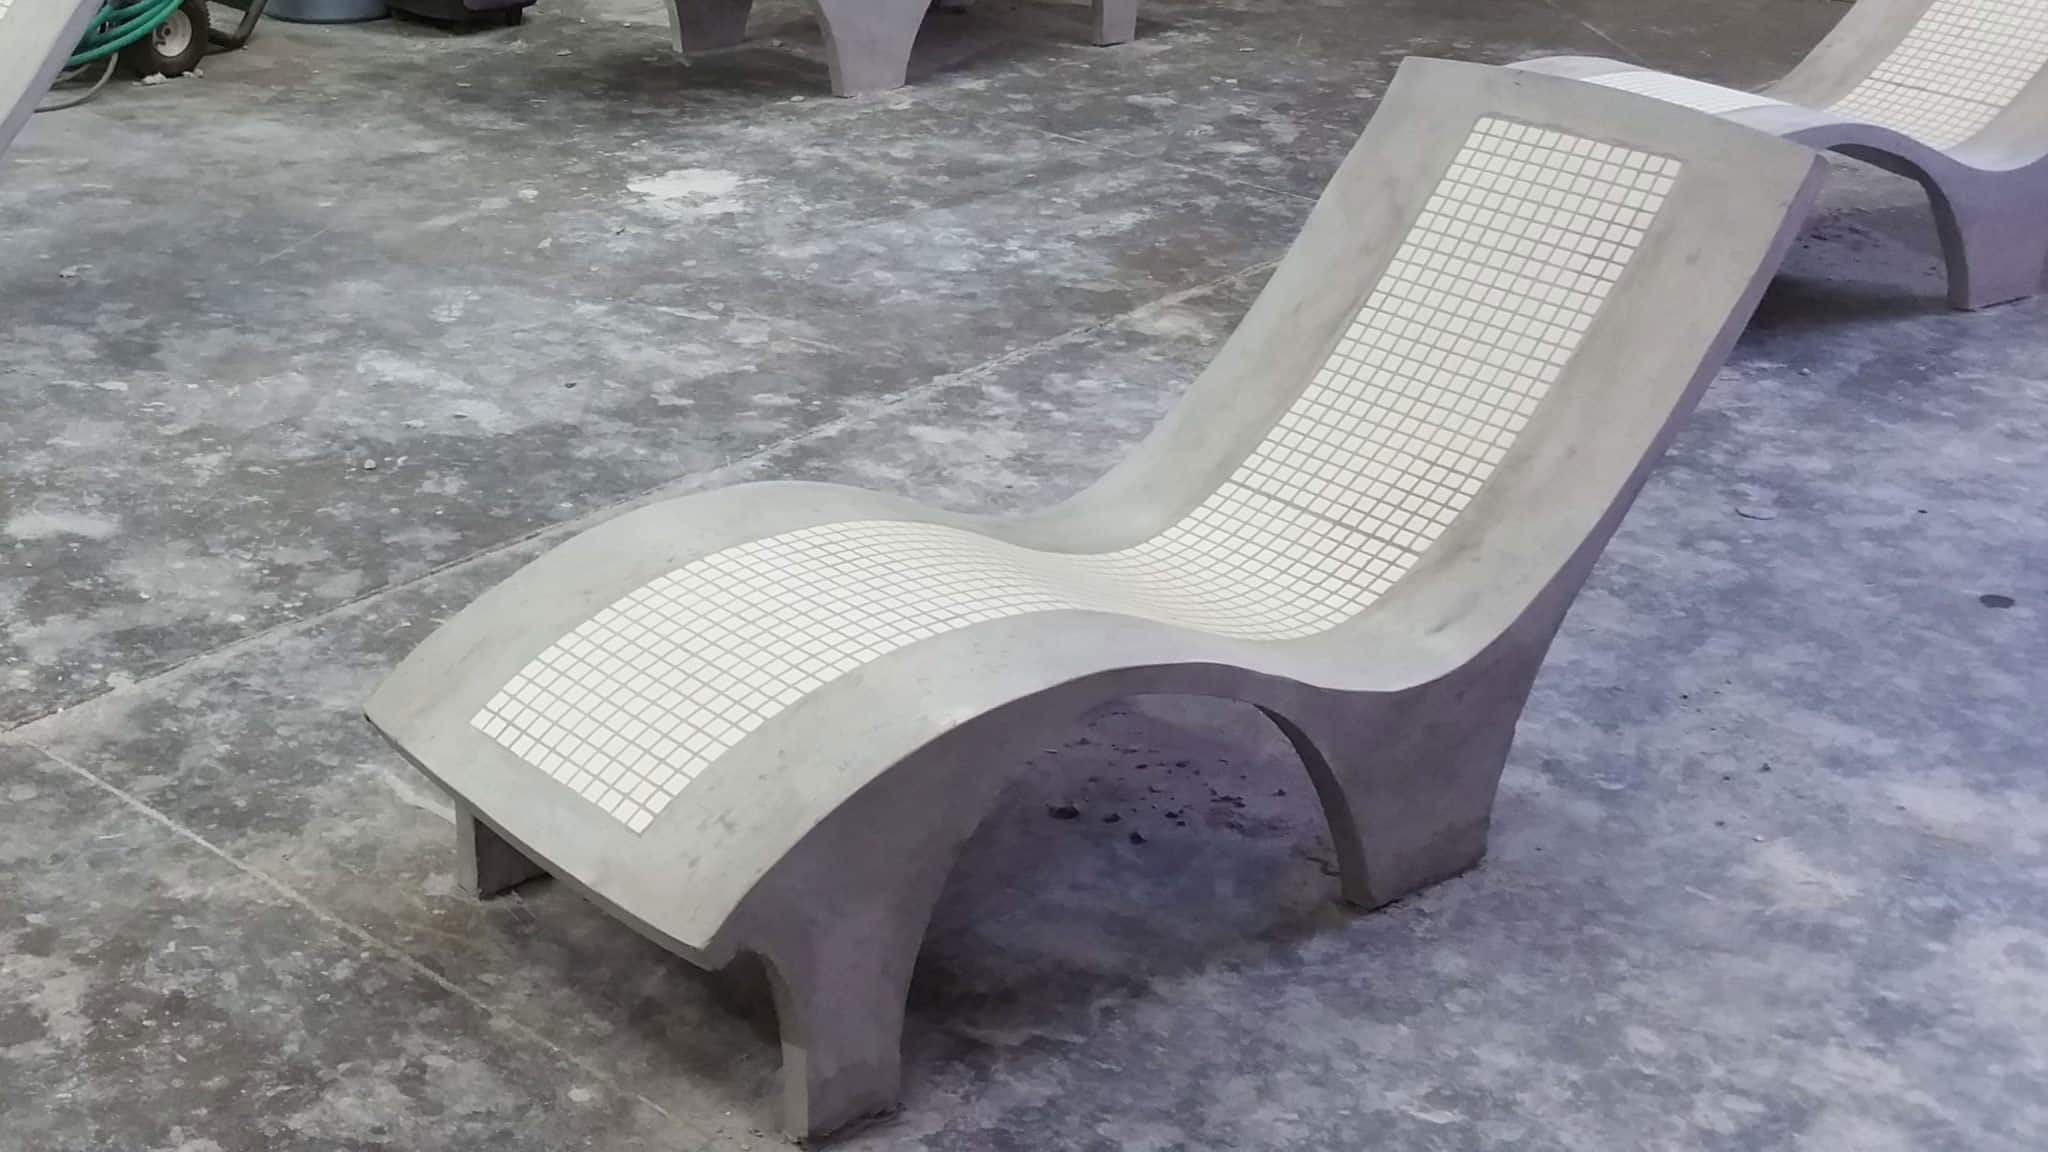 concrete patio chair with tile inlay